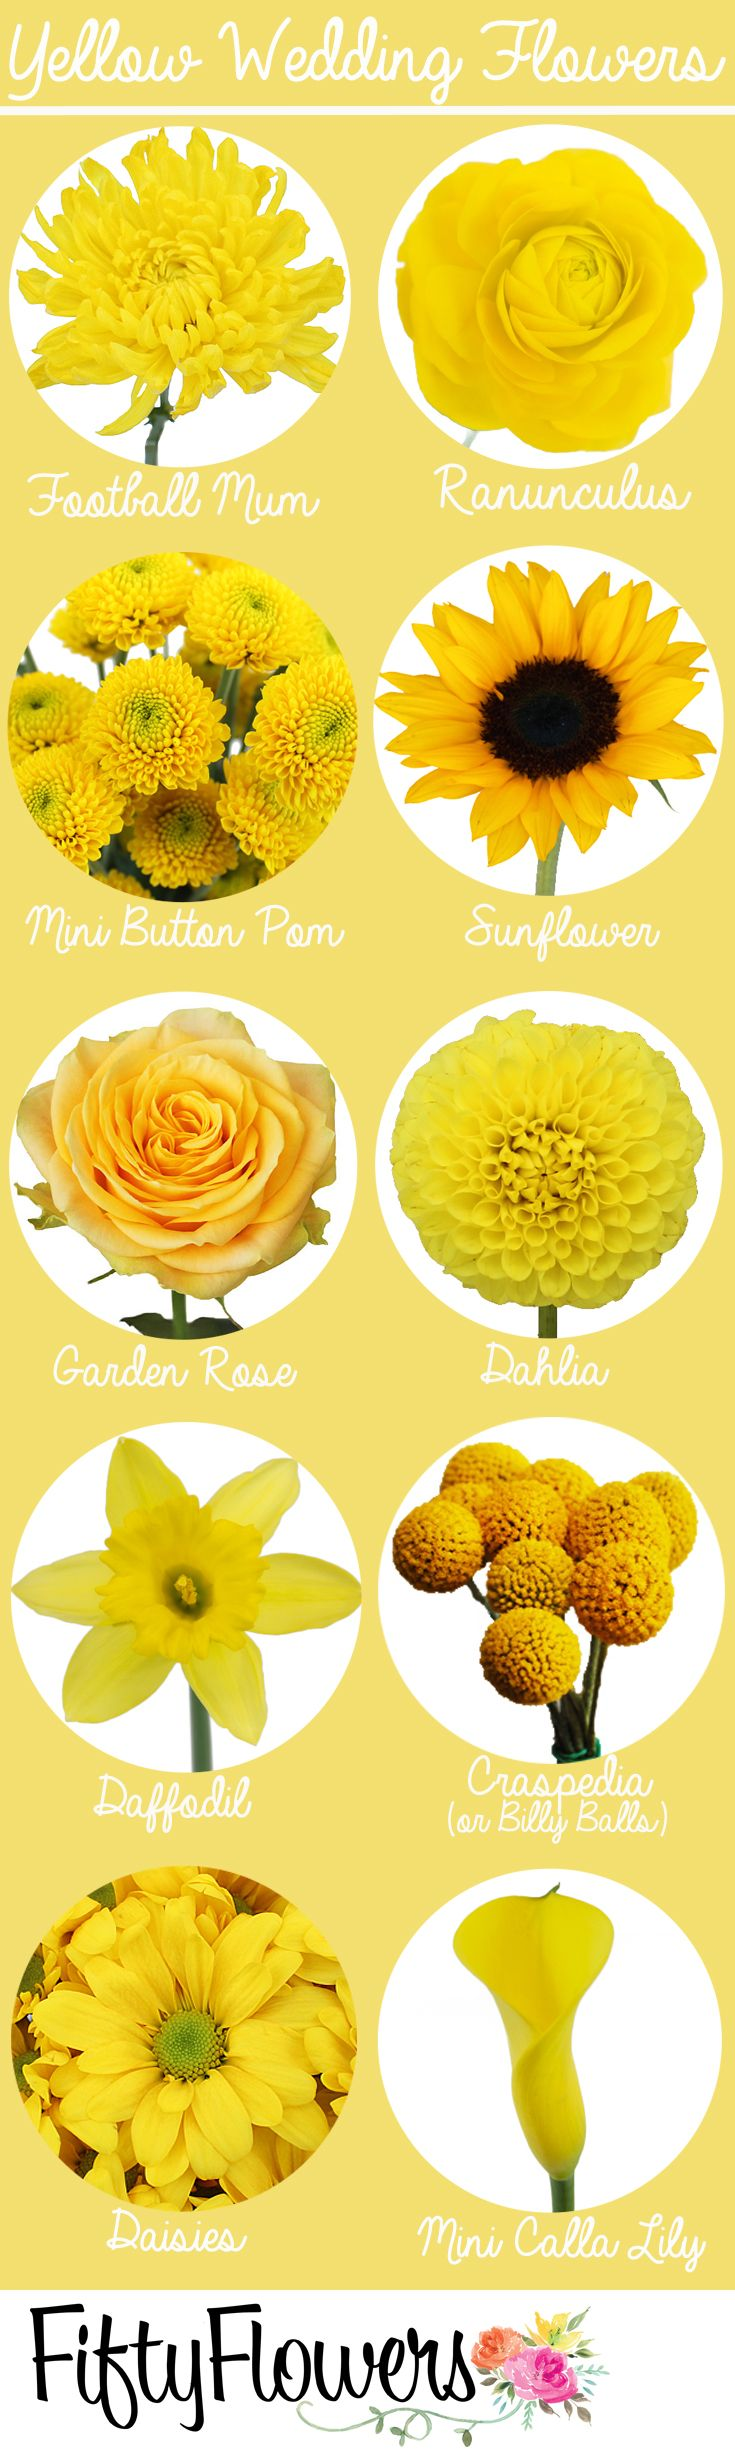 Find your sunny yellow wedding flowers at fiftyflowers find your sunny yellow wedding flowers at fiftyflowers mightylinksfo